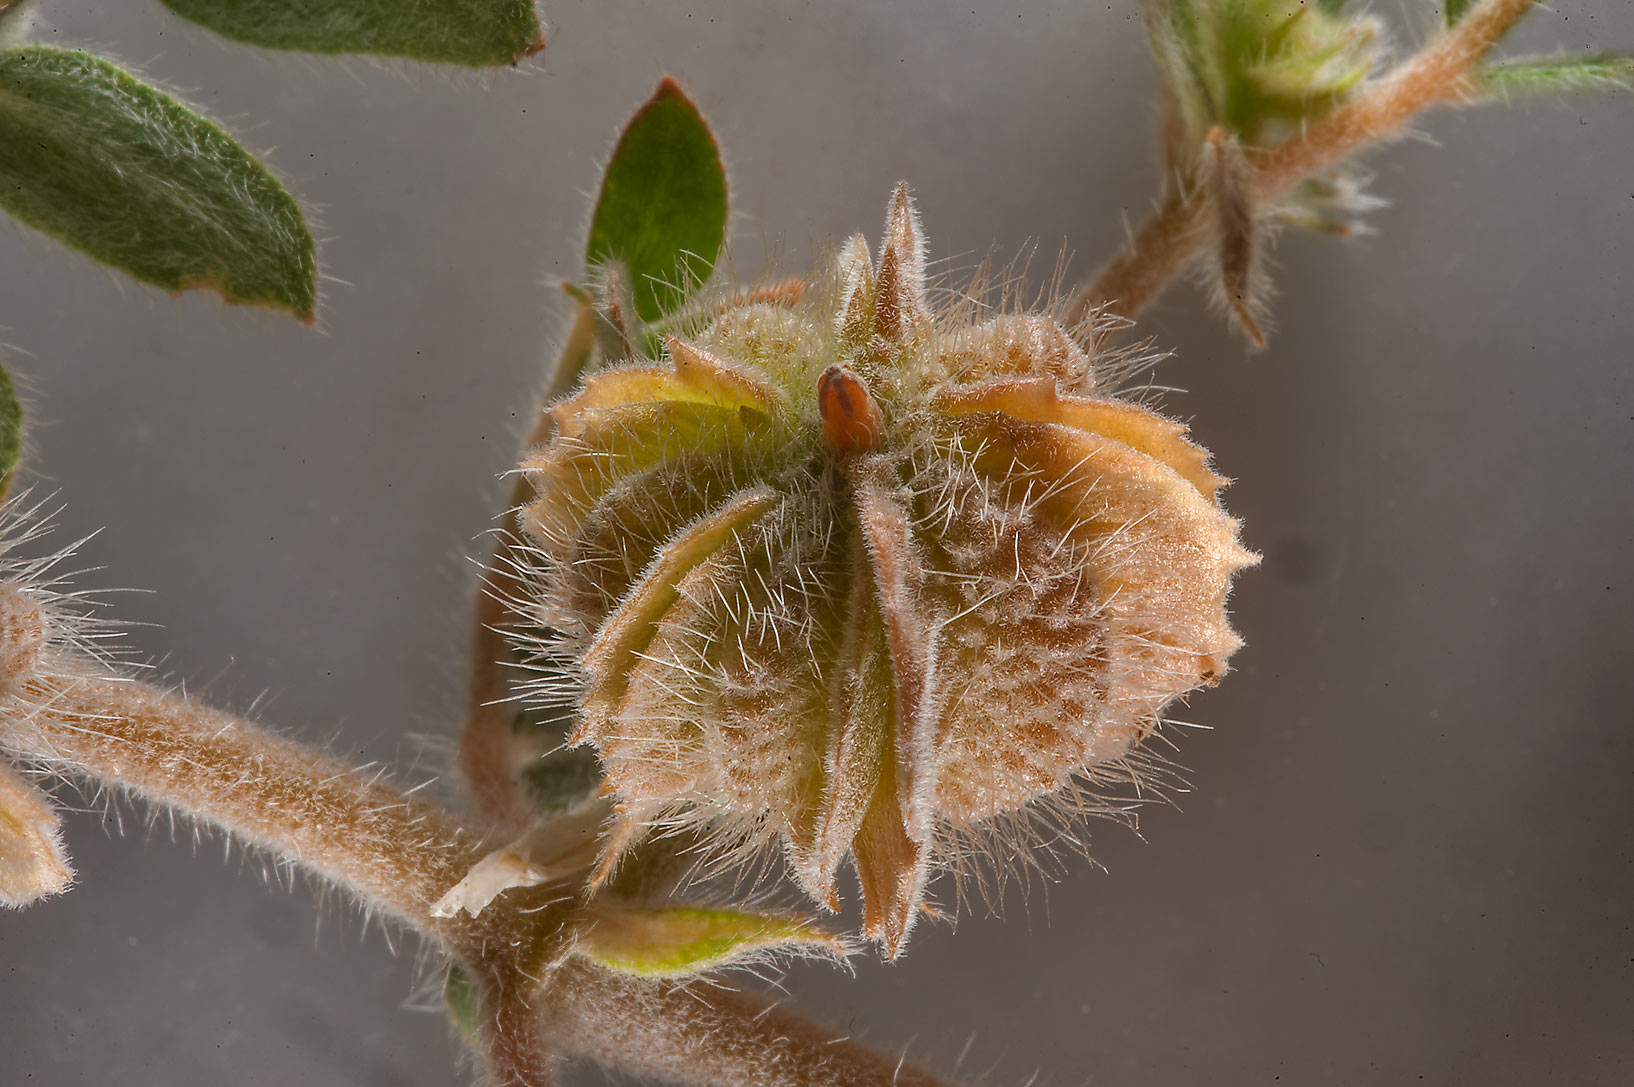 Hairy fruit of Tribulus macropterus taken from a...Highway in Ash-Shahaniyah. Qatar